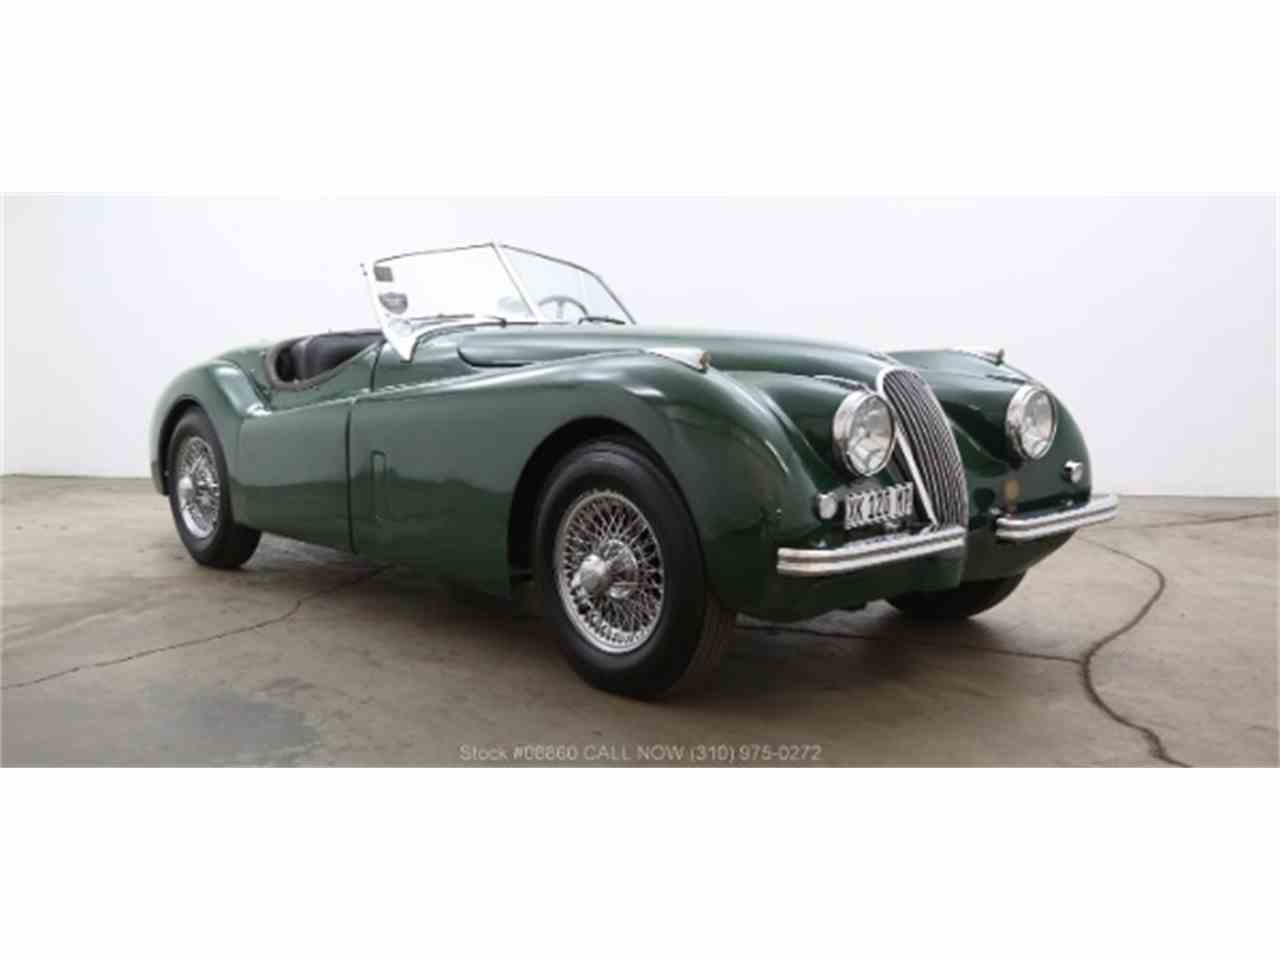 a bodied supersonics land of age sale mo lands for peninsula jet pair the on jaguar monterey blog supersonic ghia